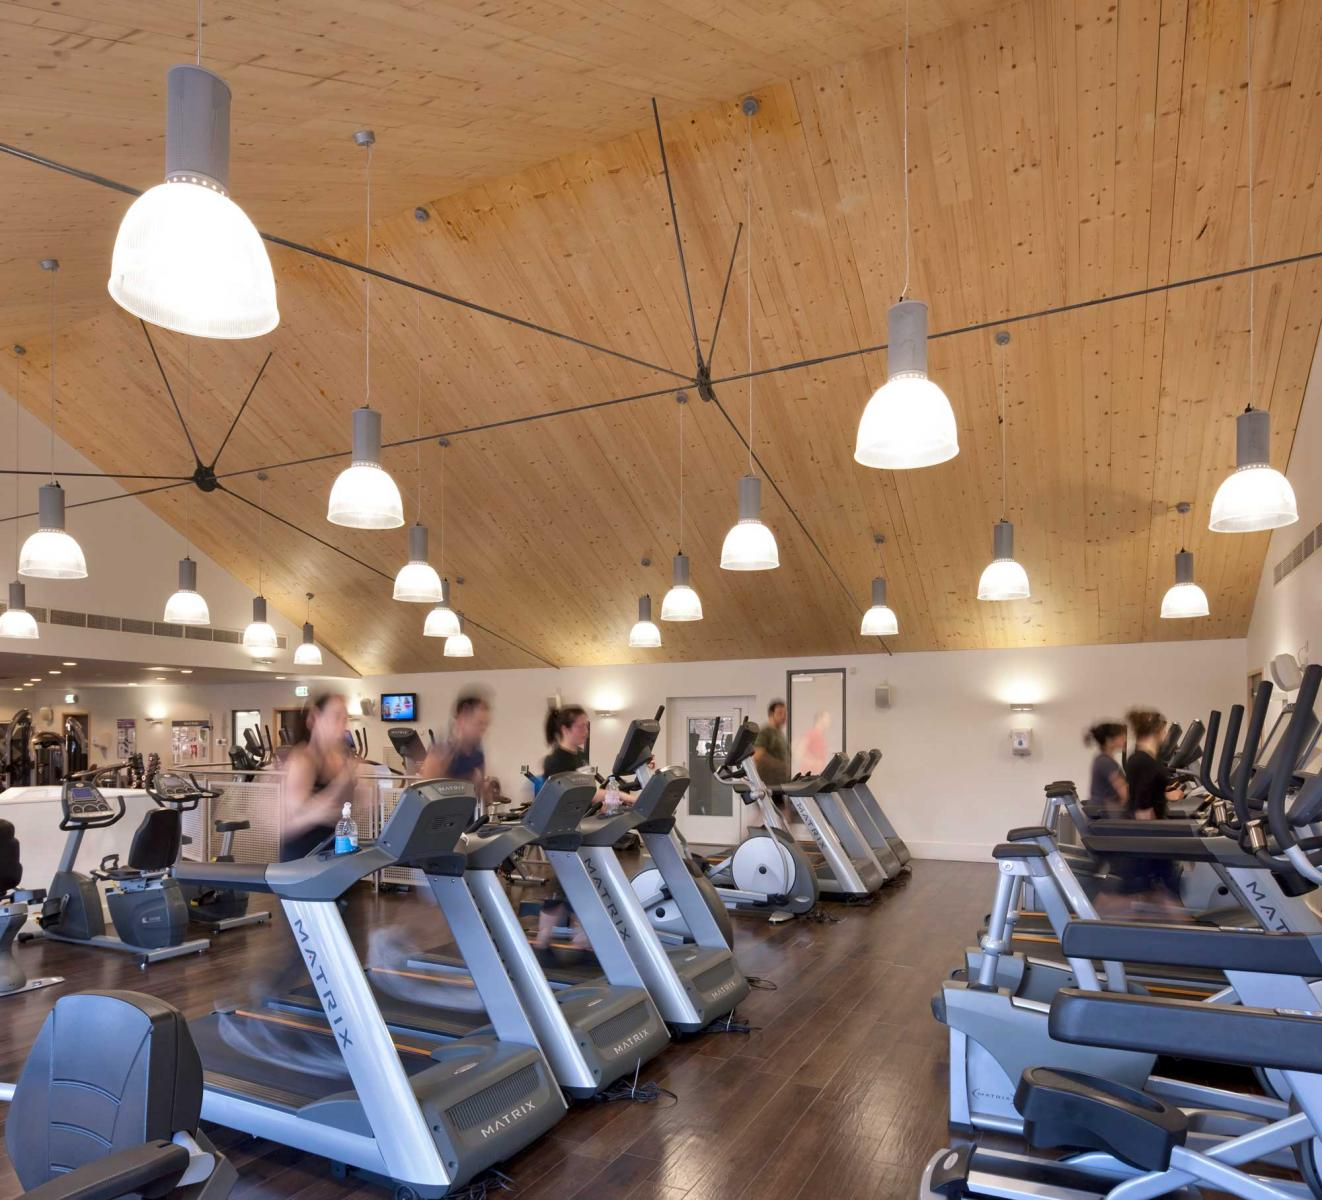 Hounslow Leisure Centres at Isleworth, Chiswick & Feltham - Gym in the Chiswick New Pool